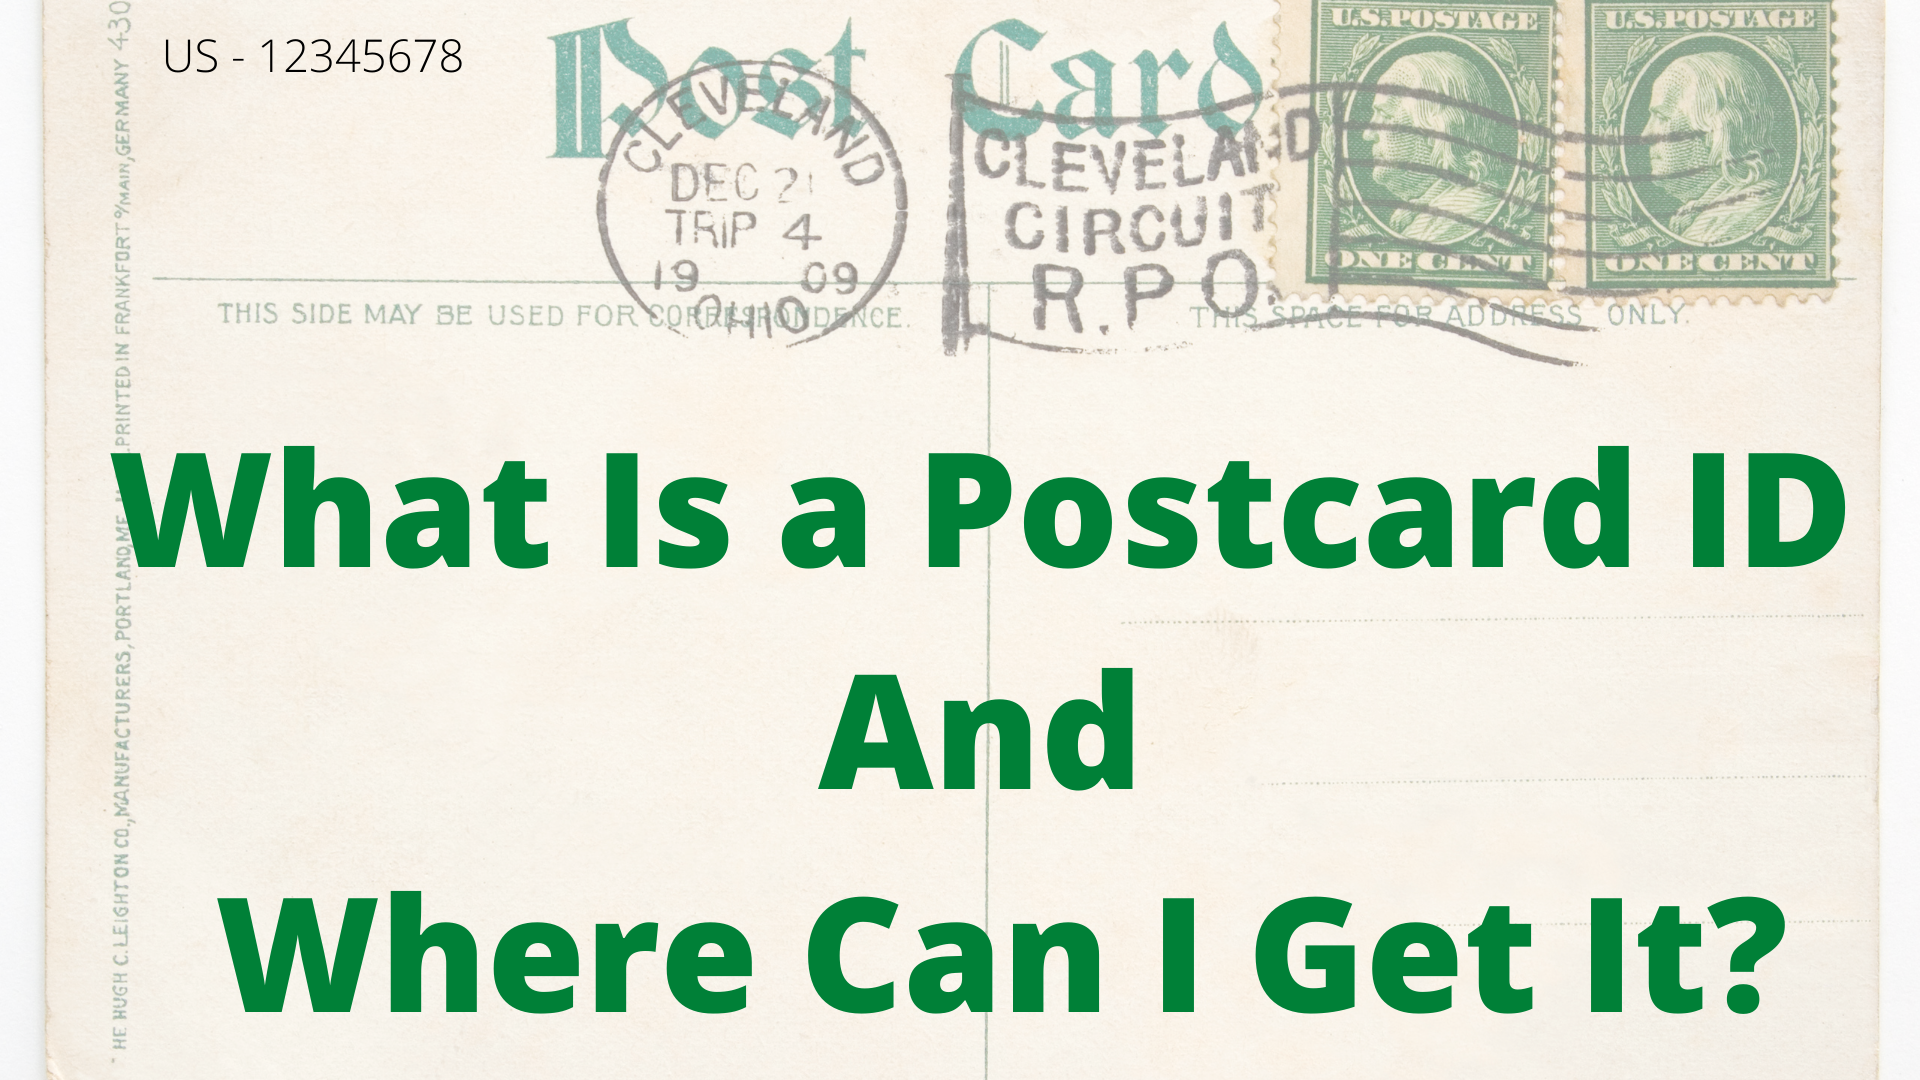 What is a postcard ID in Postcrossing, and where can I get it